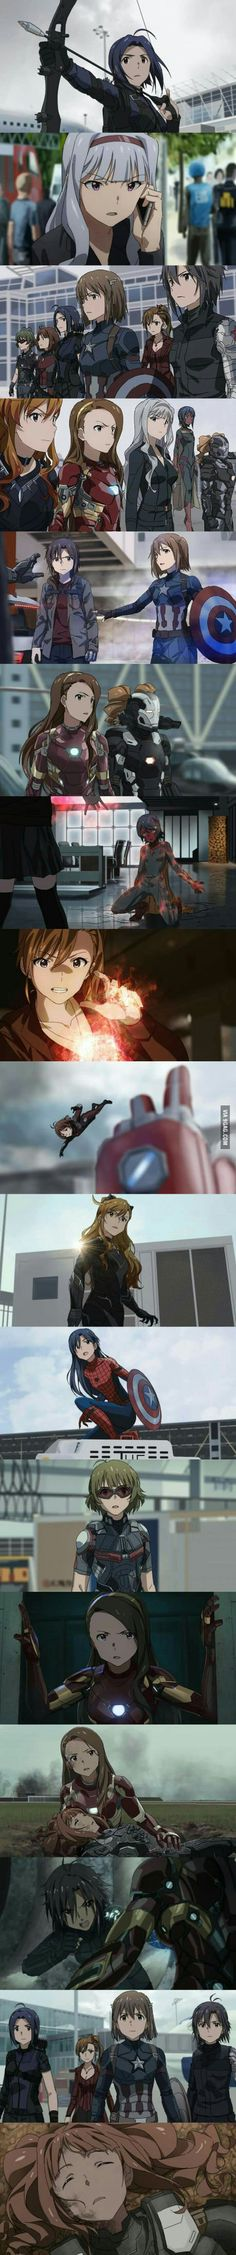 Captain America : Civil War [Anime Version]<<< looks like puella magi madoka